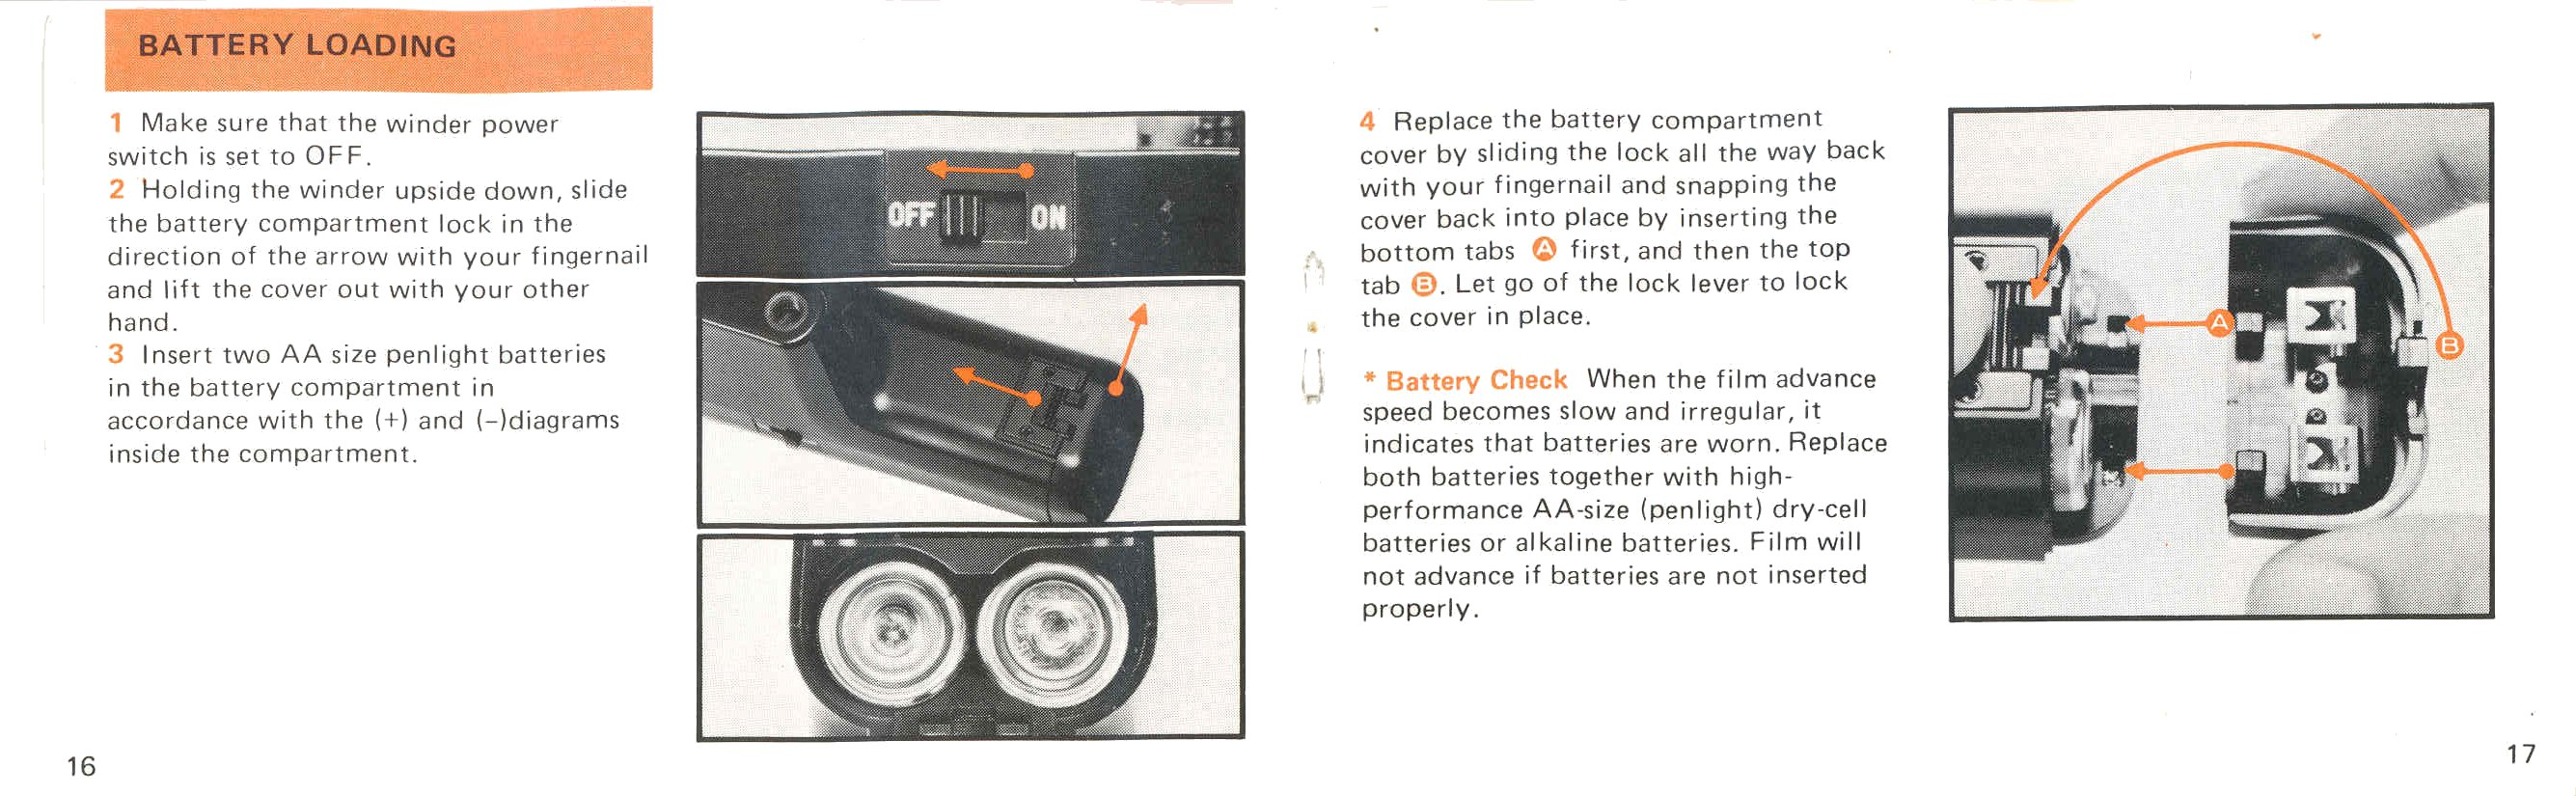 Pentax 110 Manual Dry Cell Battery Diagram On Parts Of A Alkaline Auto